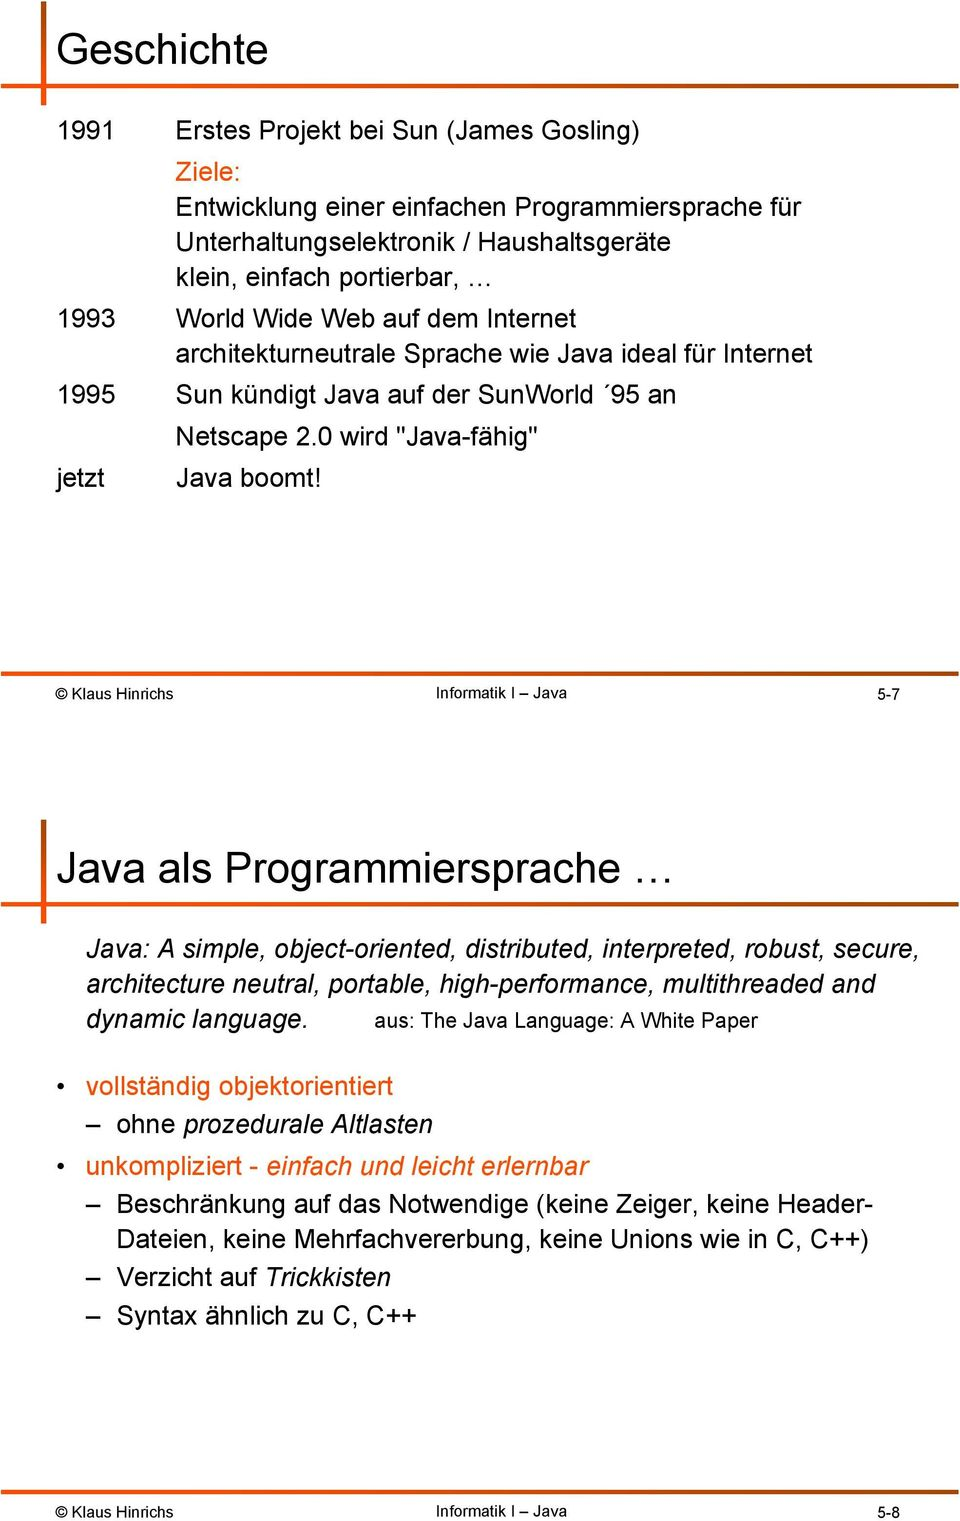 5-7 Java als Programmiersprache Java: A simple, object-oriented, distributed, interpreted, robust, secure, architecture neutral, portable, high-performance, multithreaded and dynamic language.